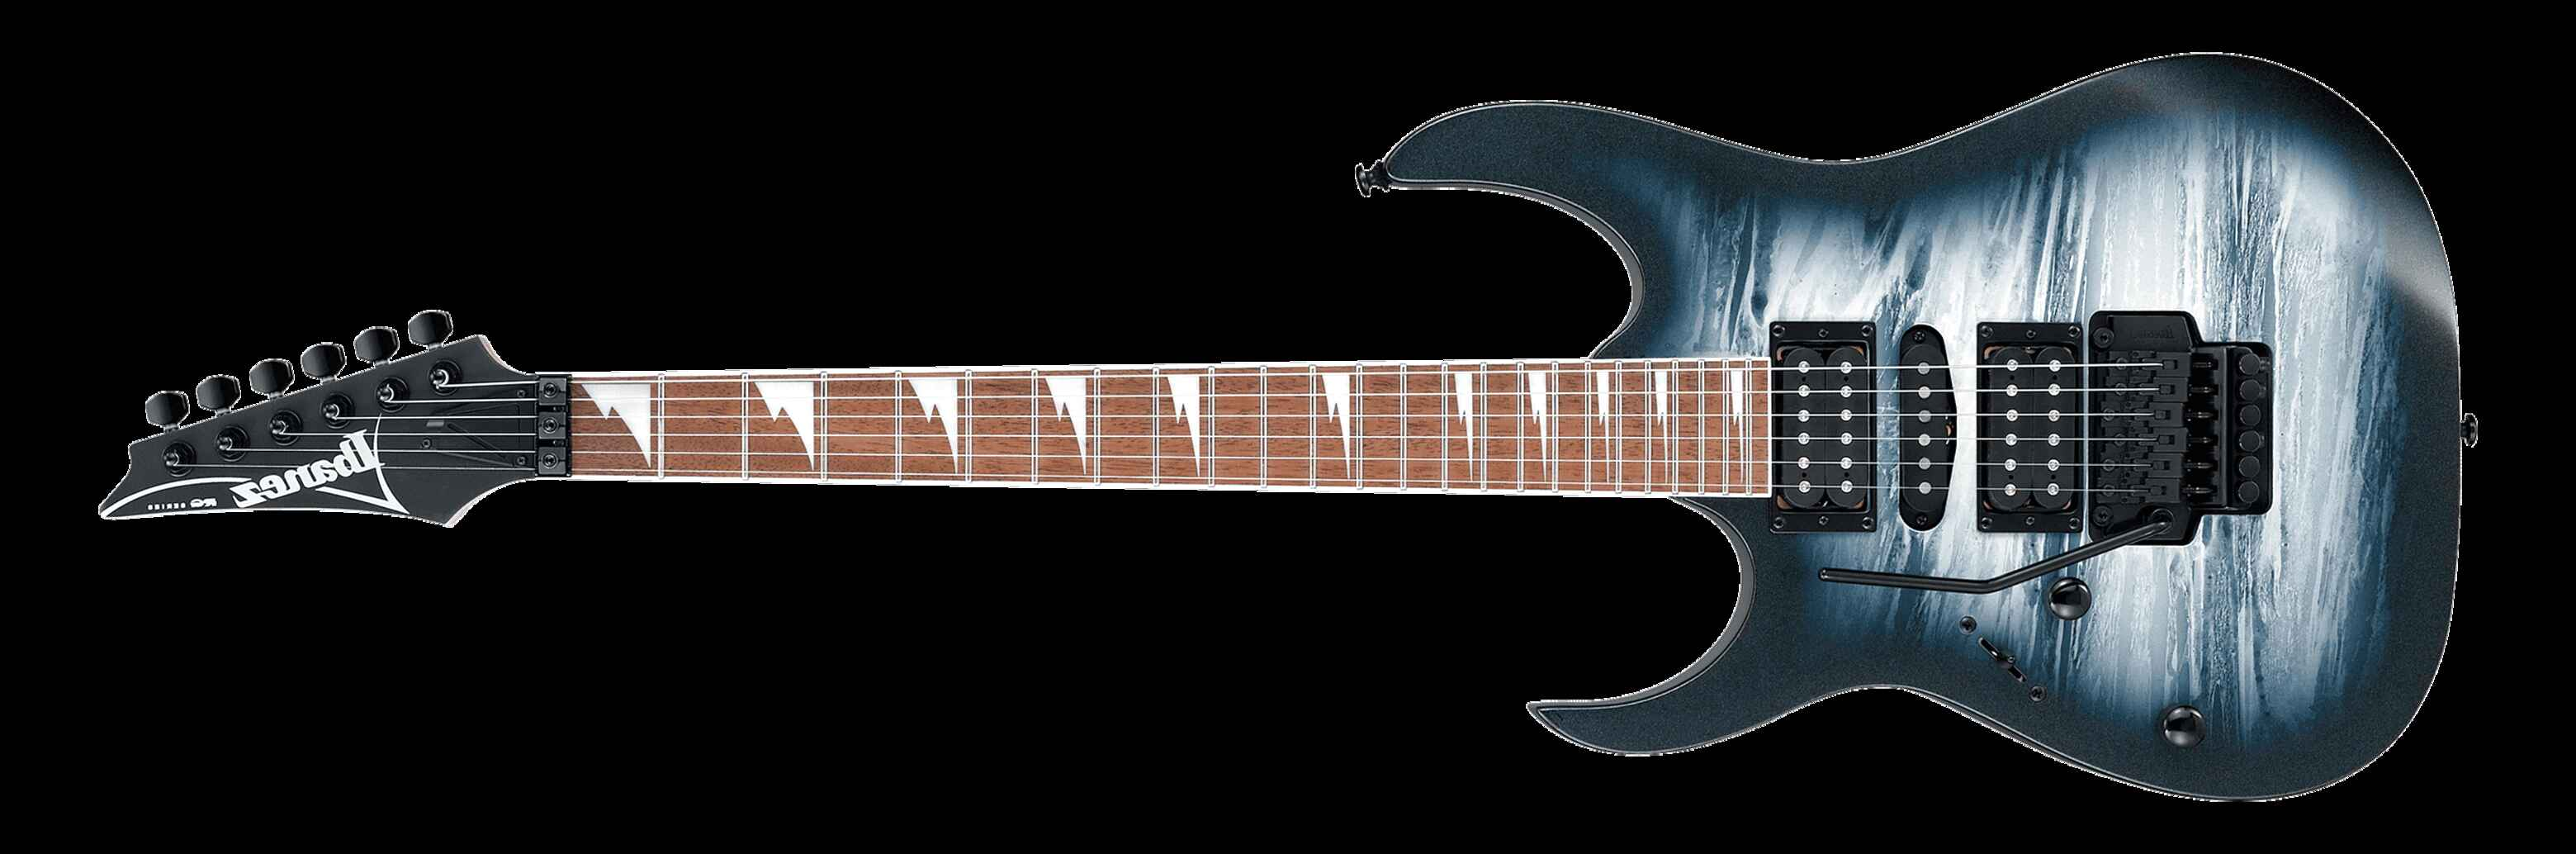 ibanez rg470 for sale